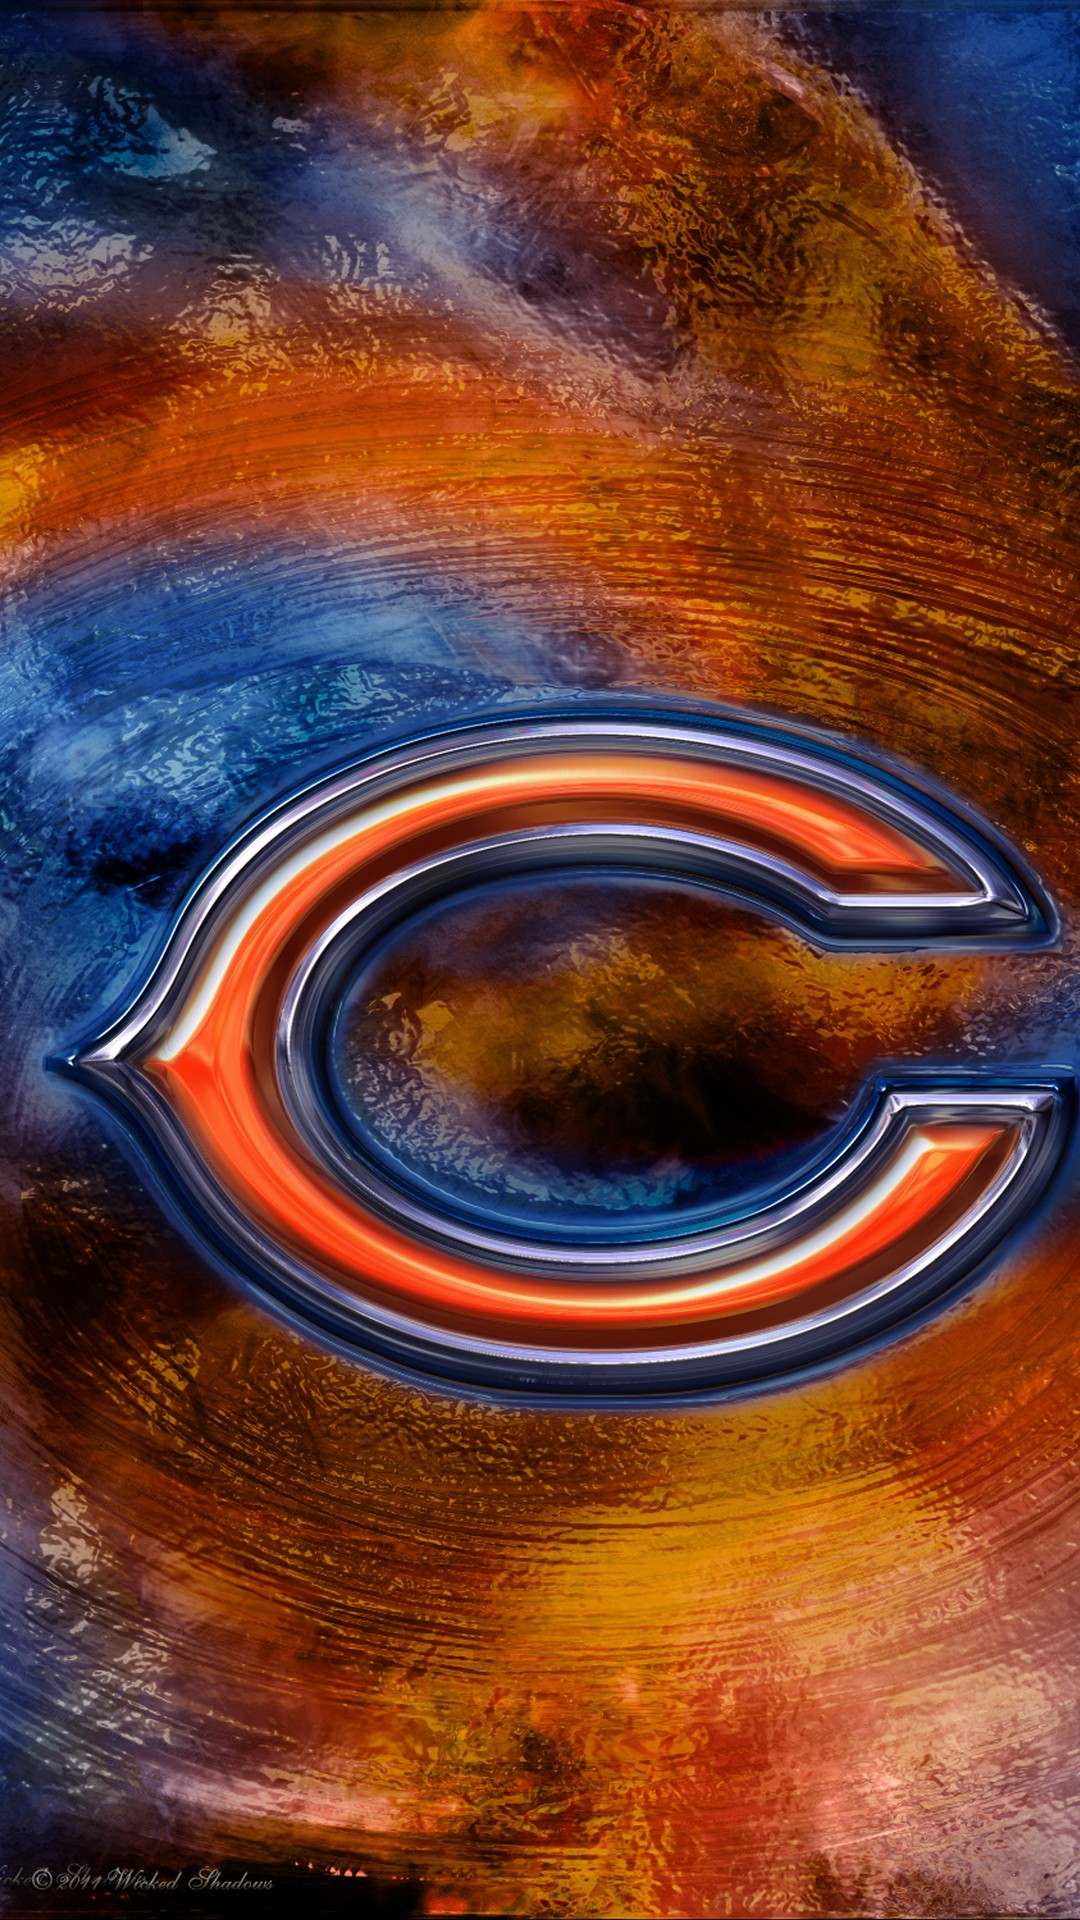 Chicago Bears Iphone 6 Plus Wallpaper With High-resolution - Cool Pictures Of Chicago Bears - HD Wallpaper